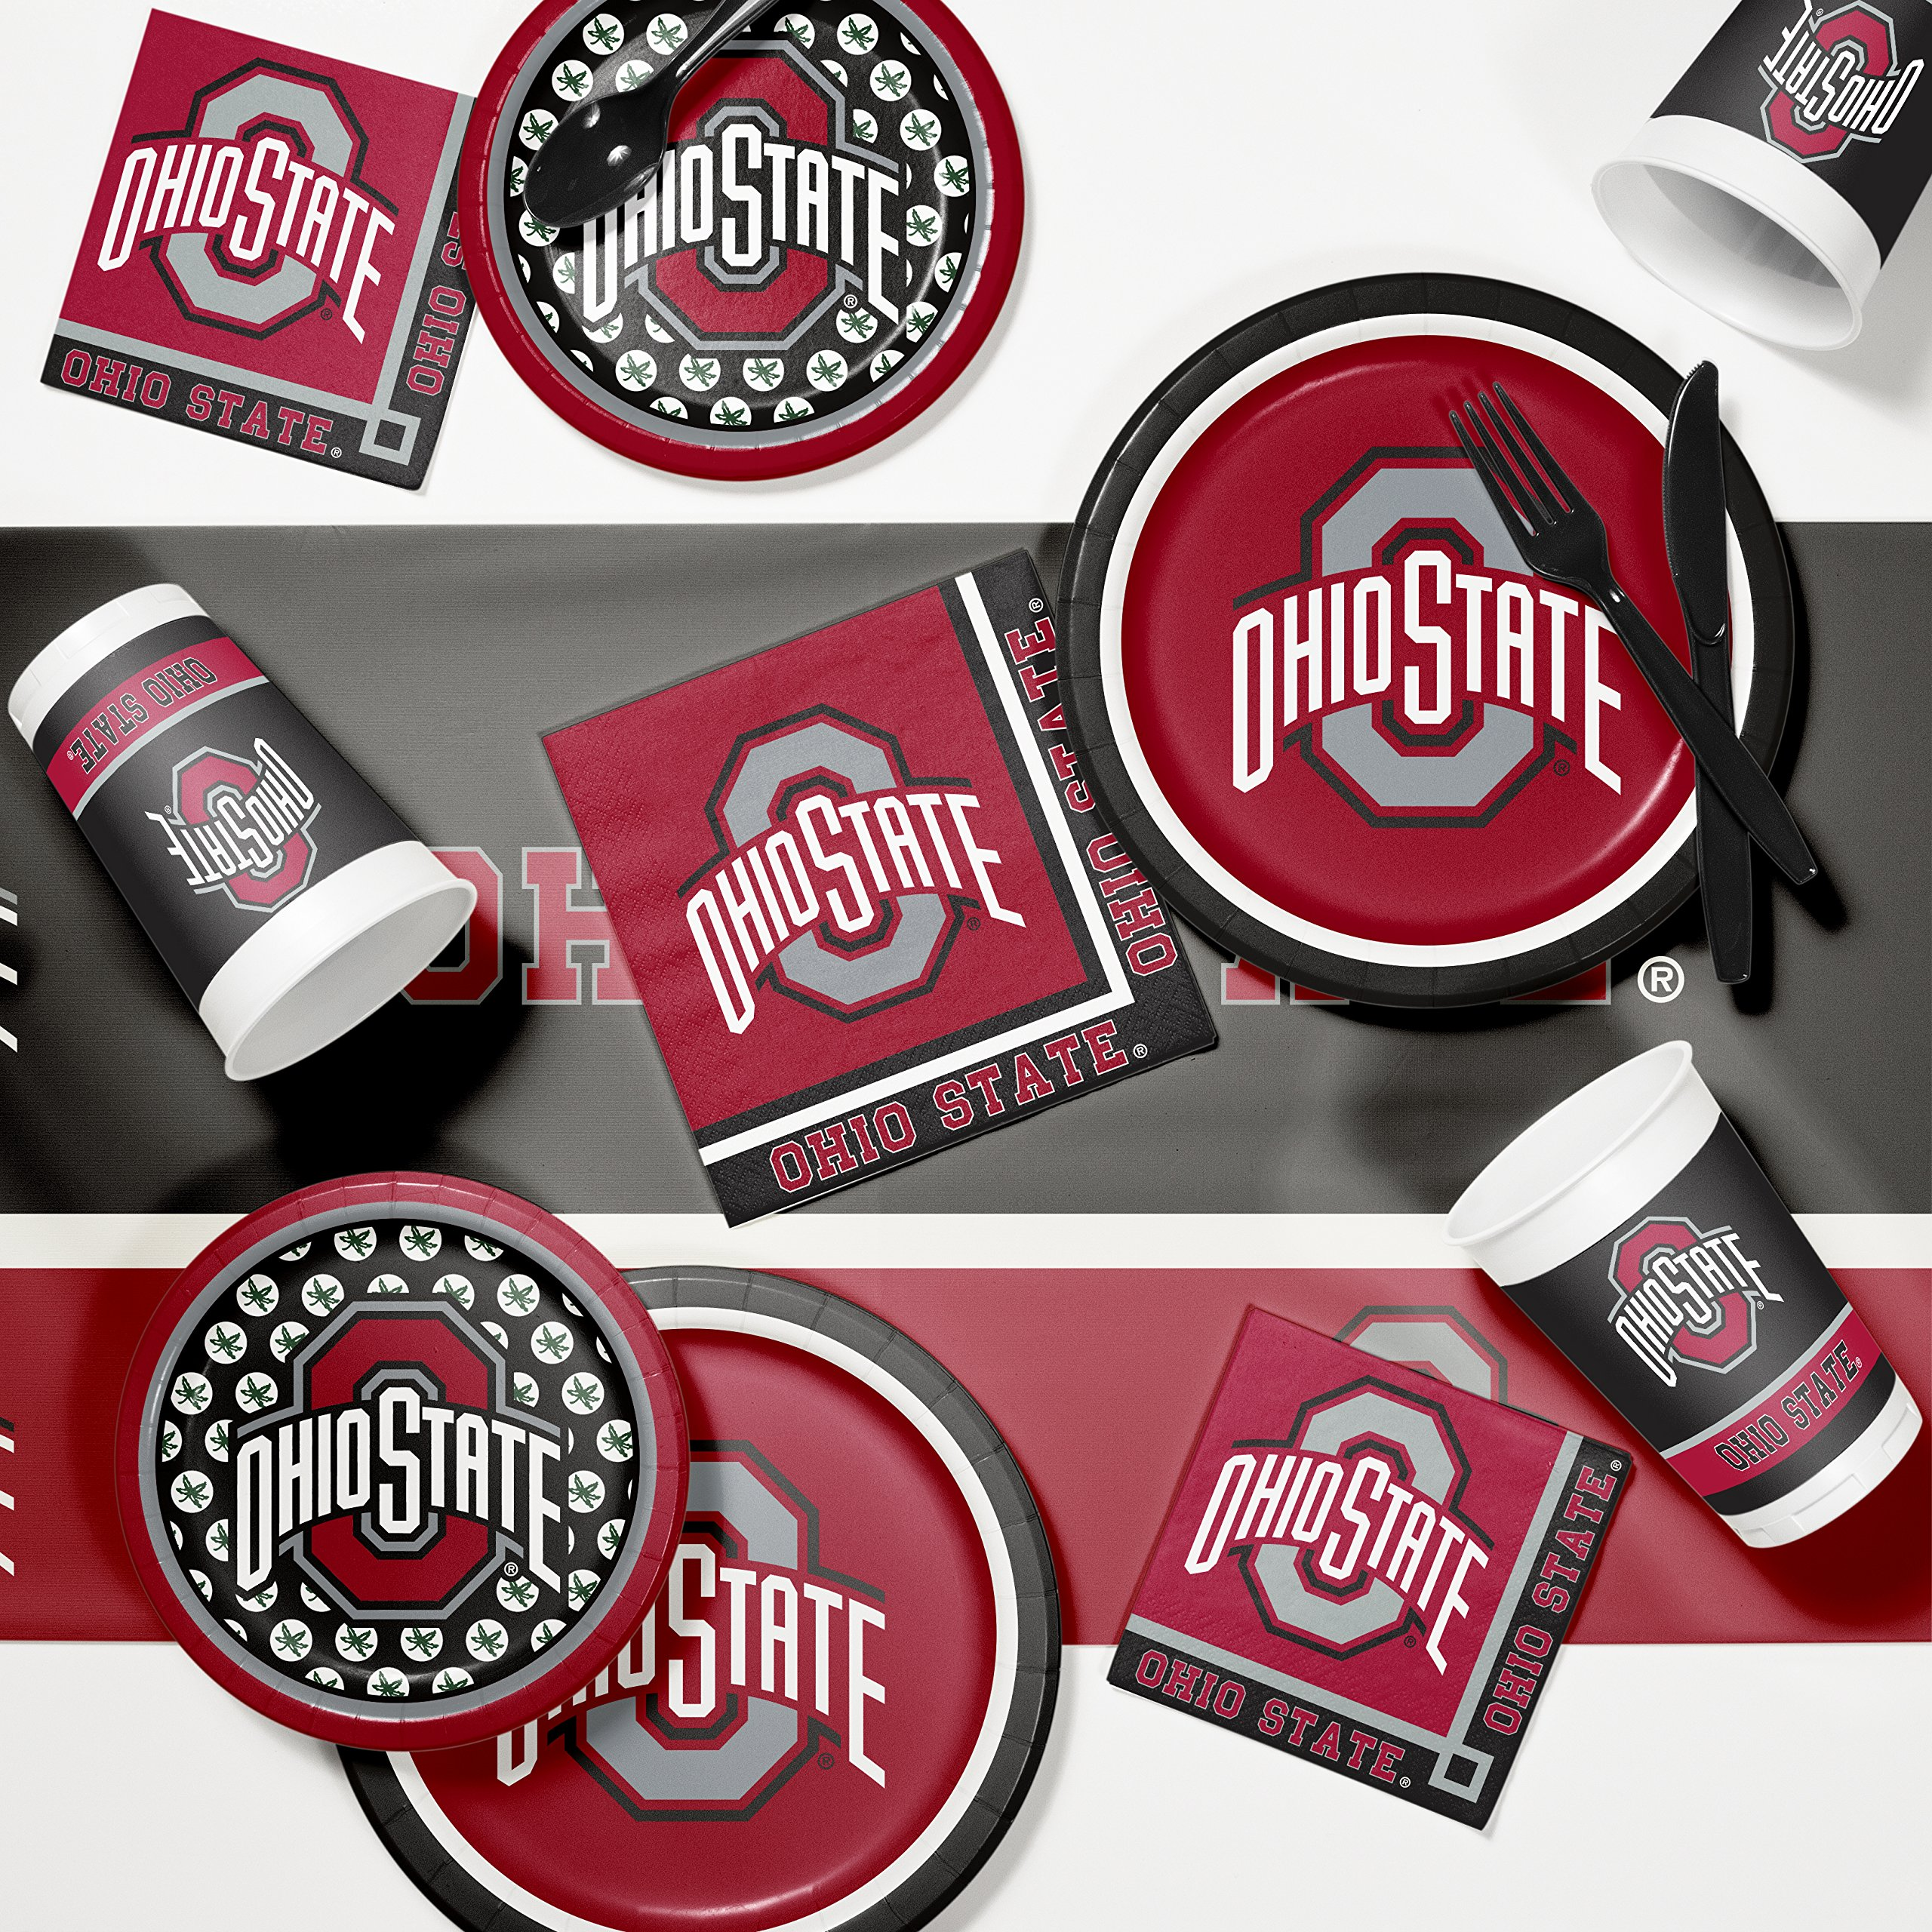 NCAA Ohio State University Game Day Party Supplies Kit by NCAA (Image #1)